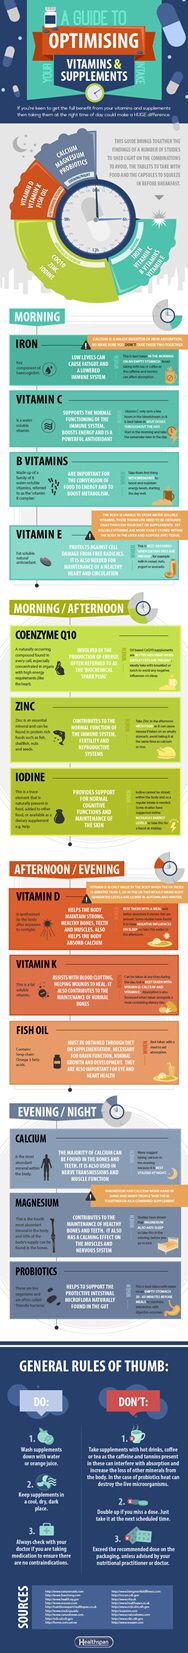 A guide to optimizing vitamins & supplements - according to research from Healthspan, a U.K. vitamins & supplements supplier